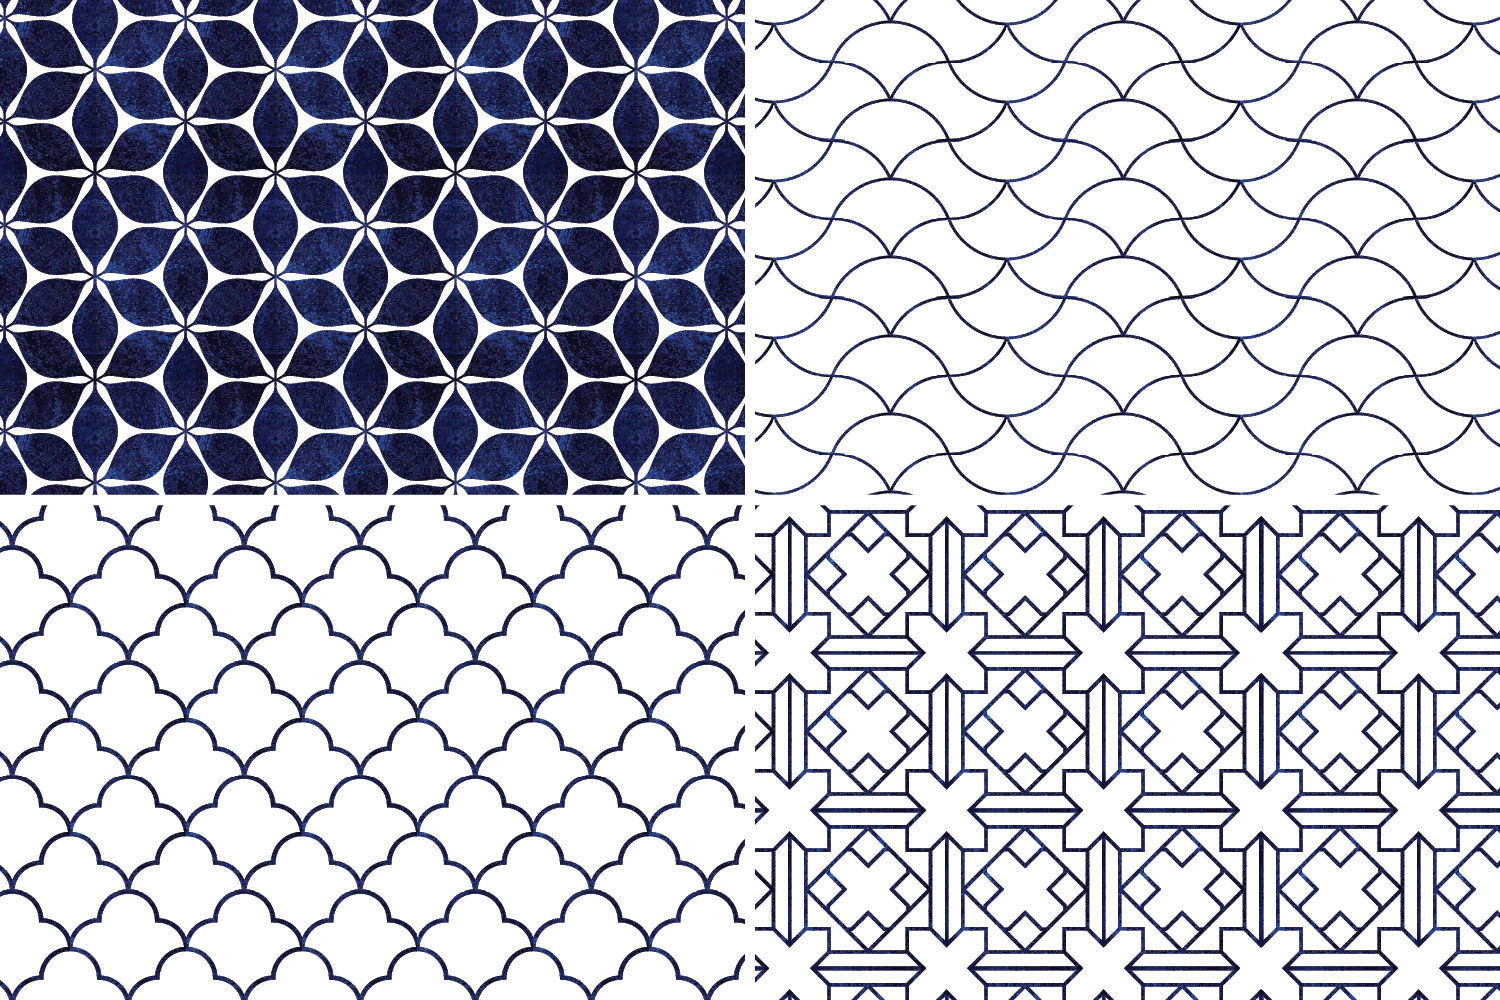 8 Seamless Moroccan Patterns - White & Blue Watercolor Set 3 example image 7